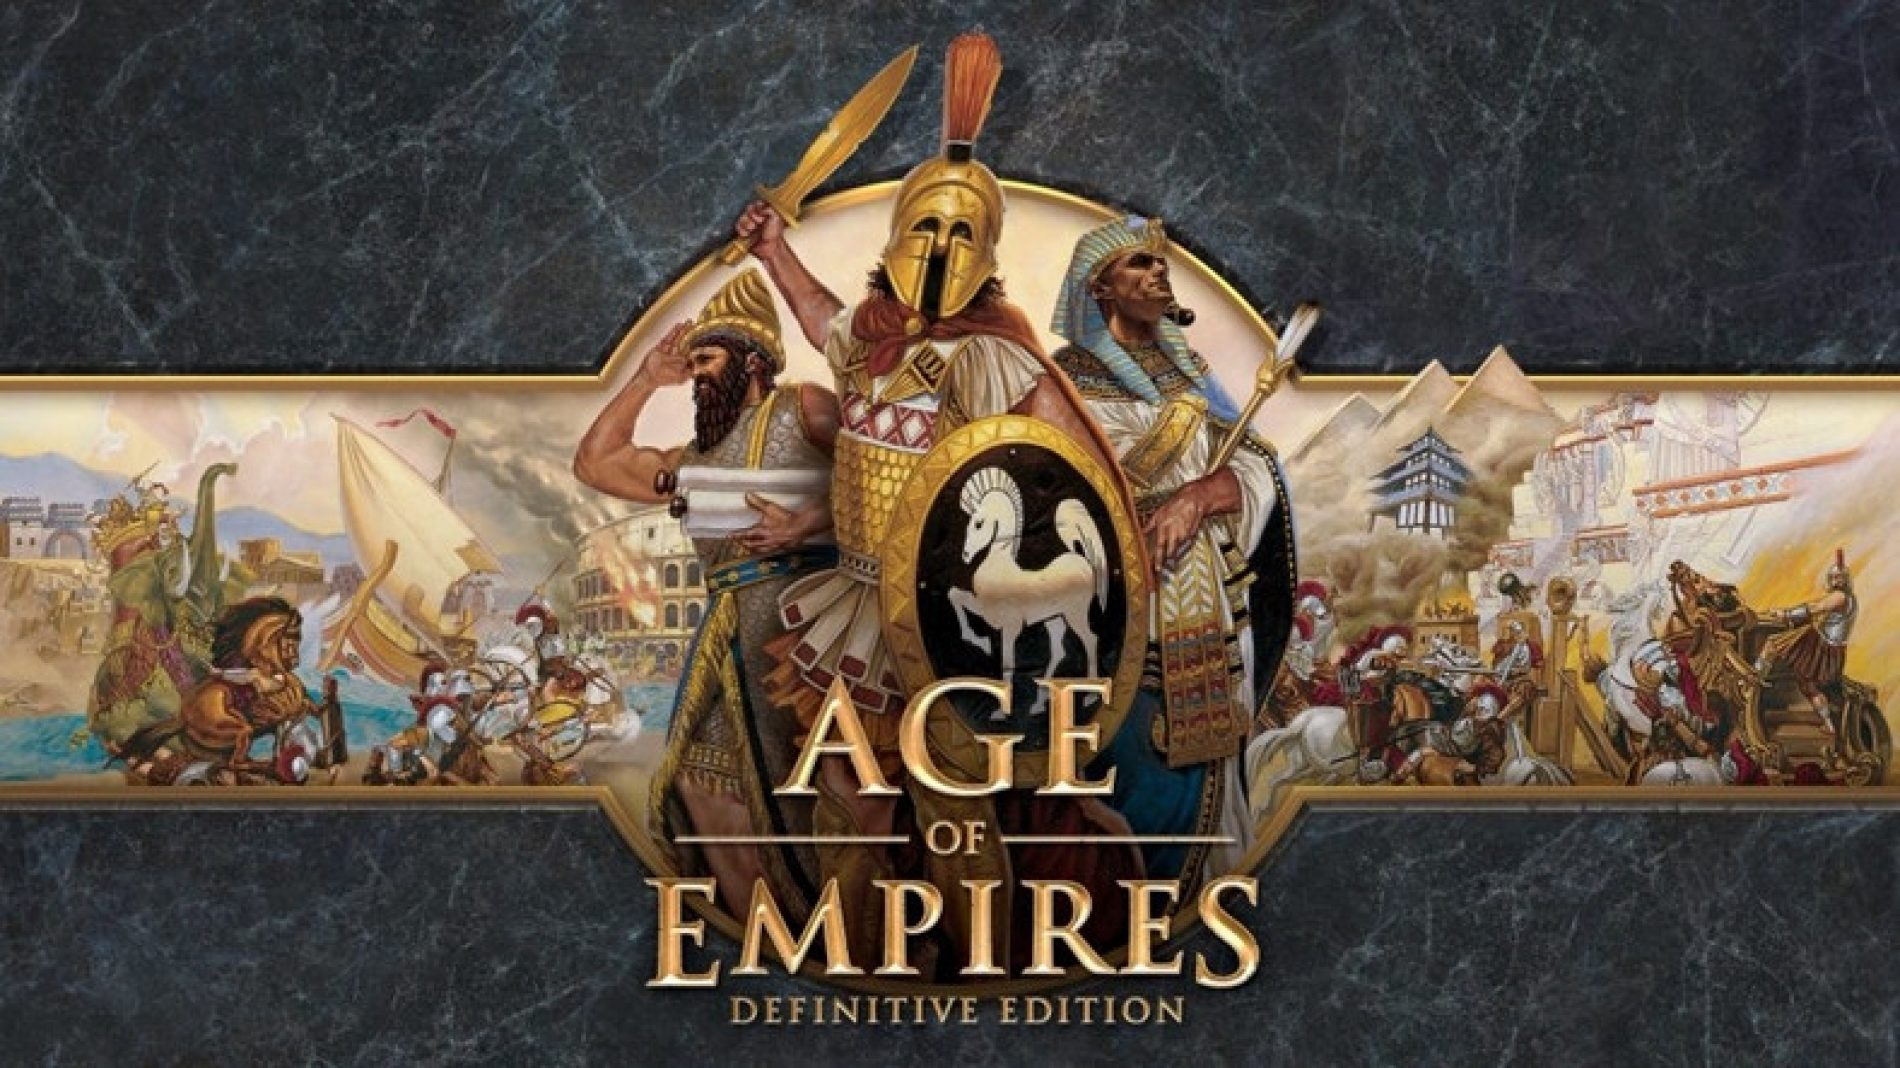 Age Of Empires Definitive Sürprizi